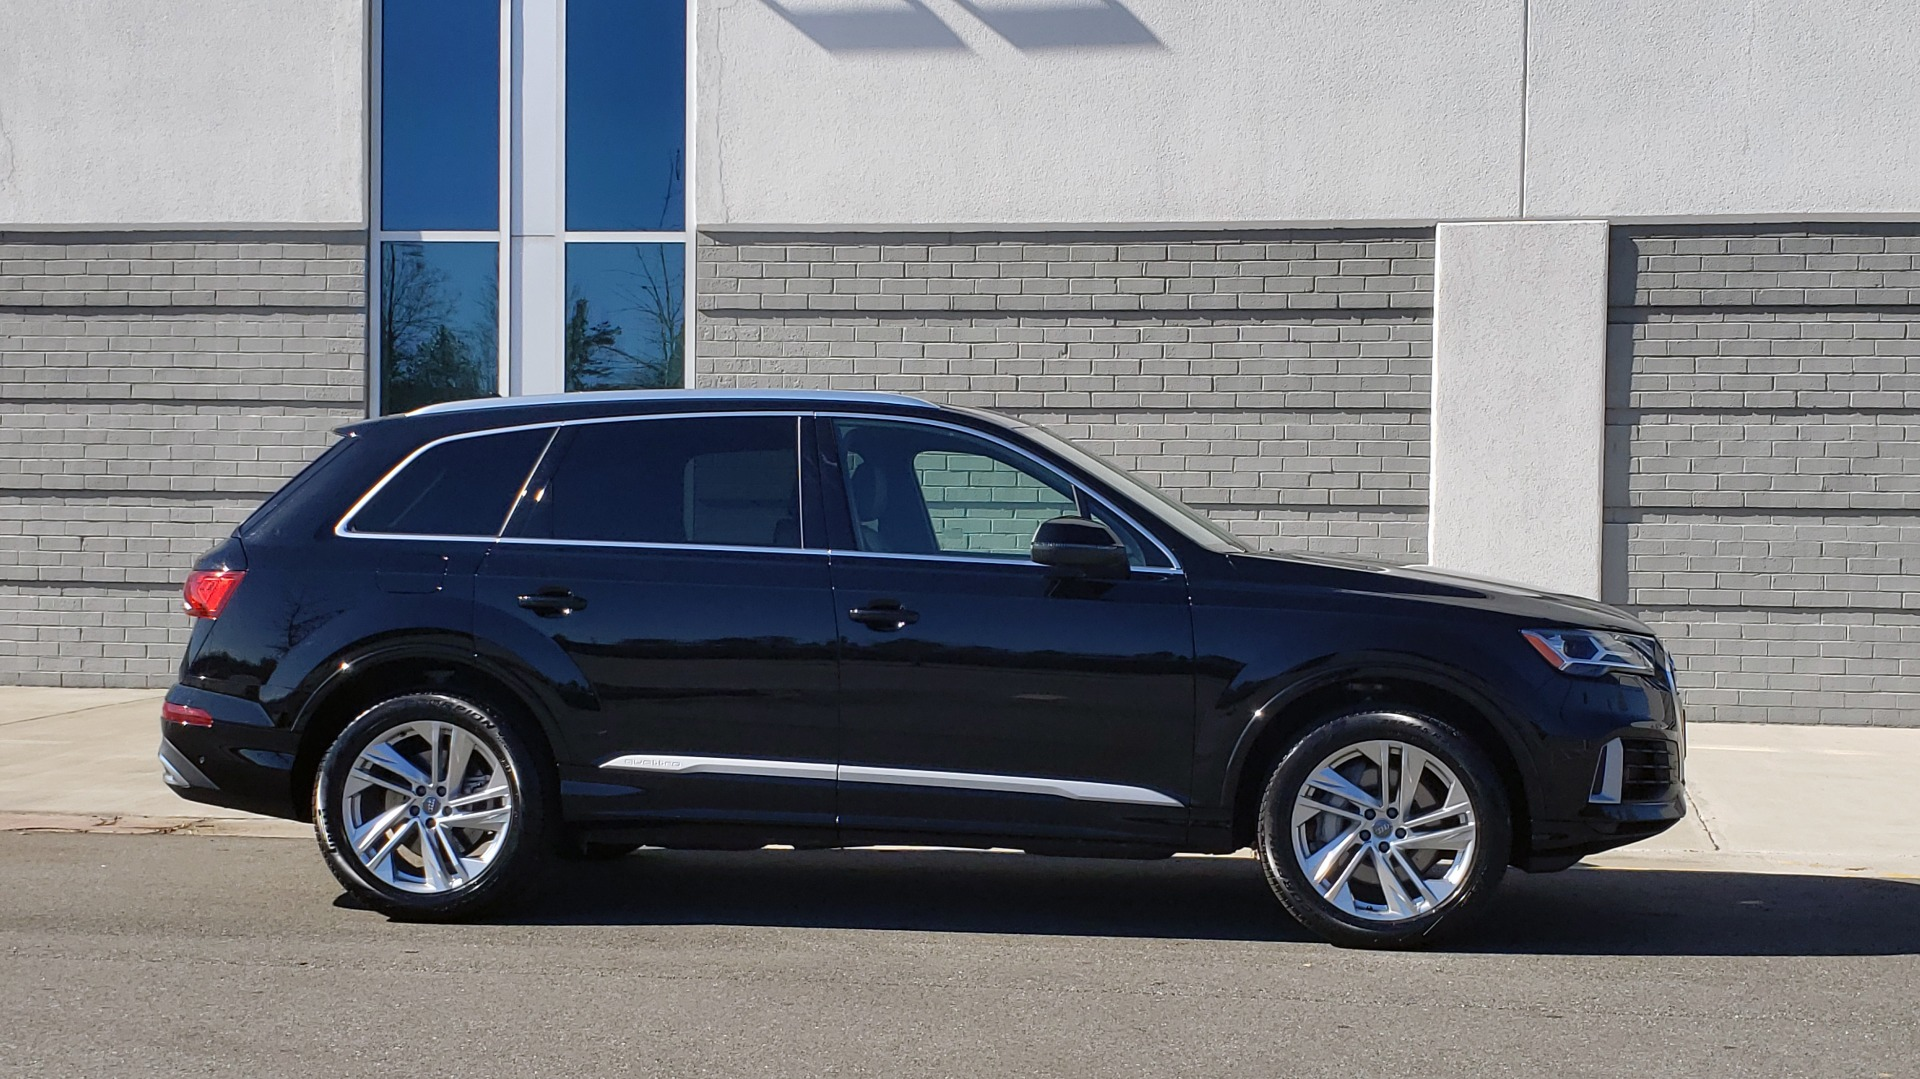 Used 2020 Audi Q7 PREMIUM PLUS / NAV / SUNROOF / 3-ROW / REARVIEW for sale $50,695 at Formula Imports in Charlotte NC 28227 8